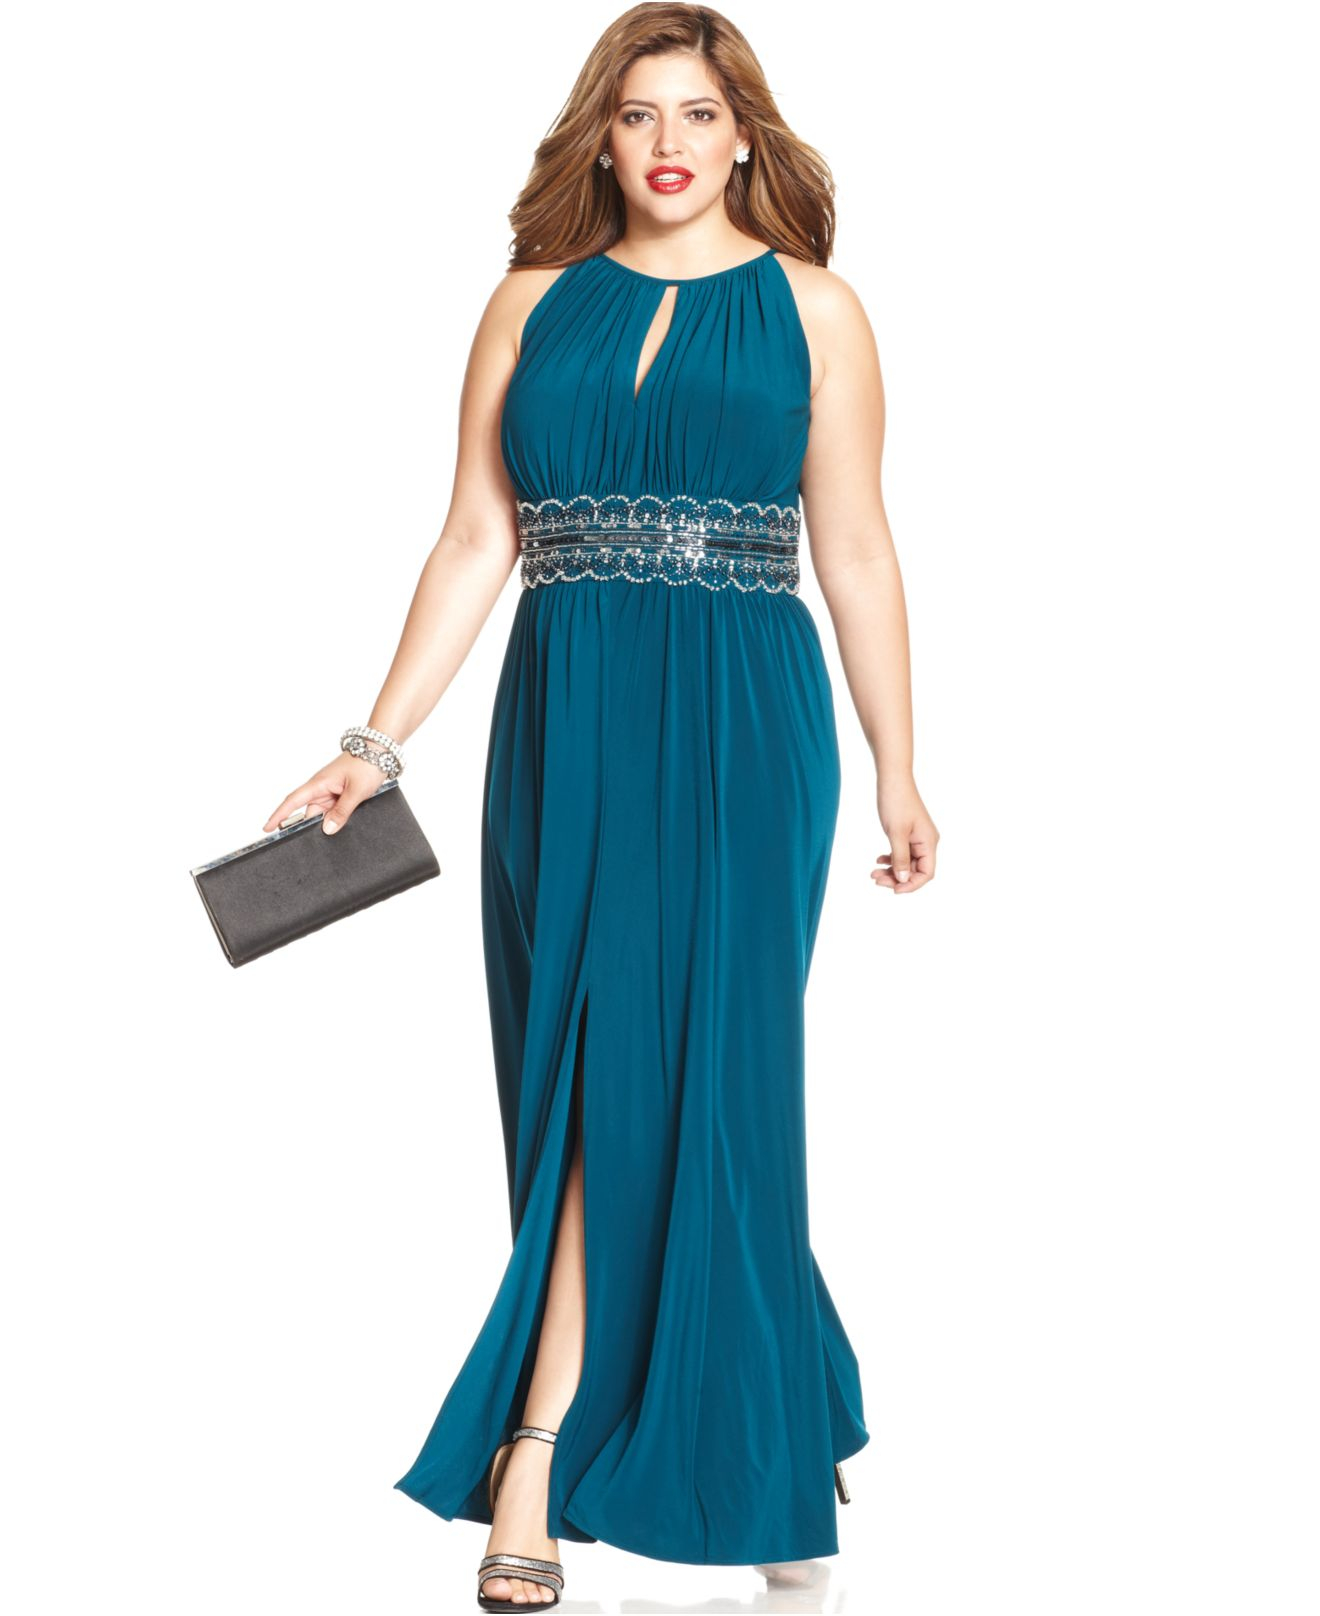 d618118dd2e R   M Richards R m Richards Plus Size Sleeveless Beaded Gown in ...